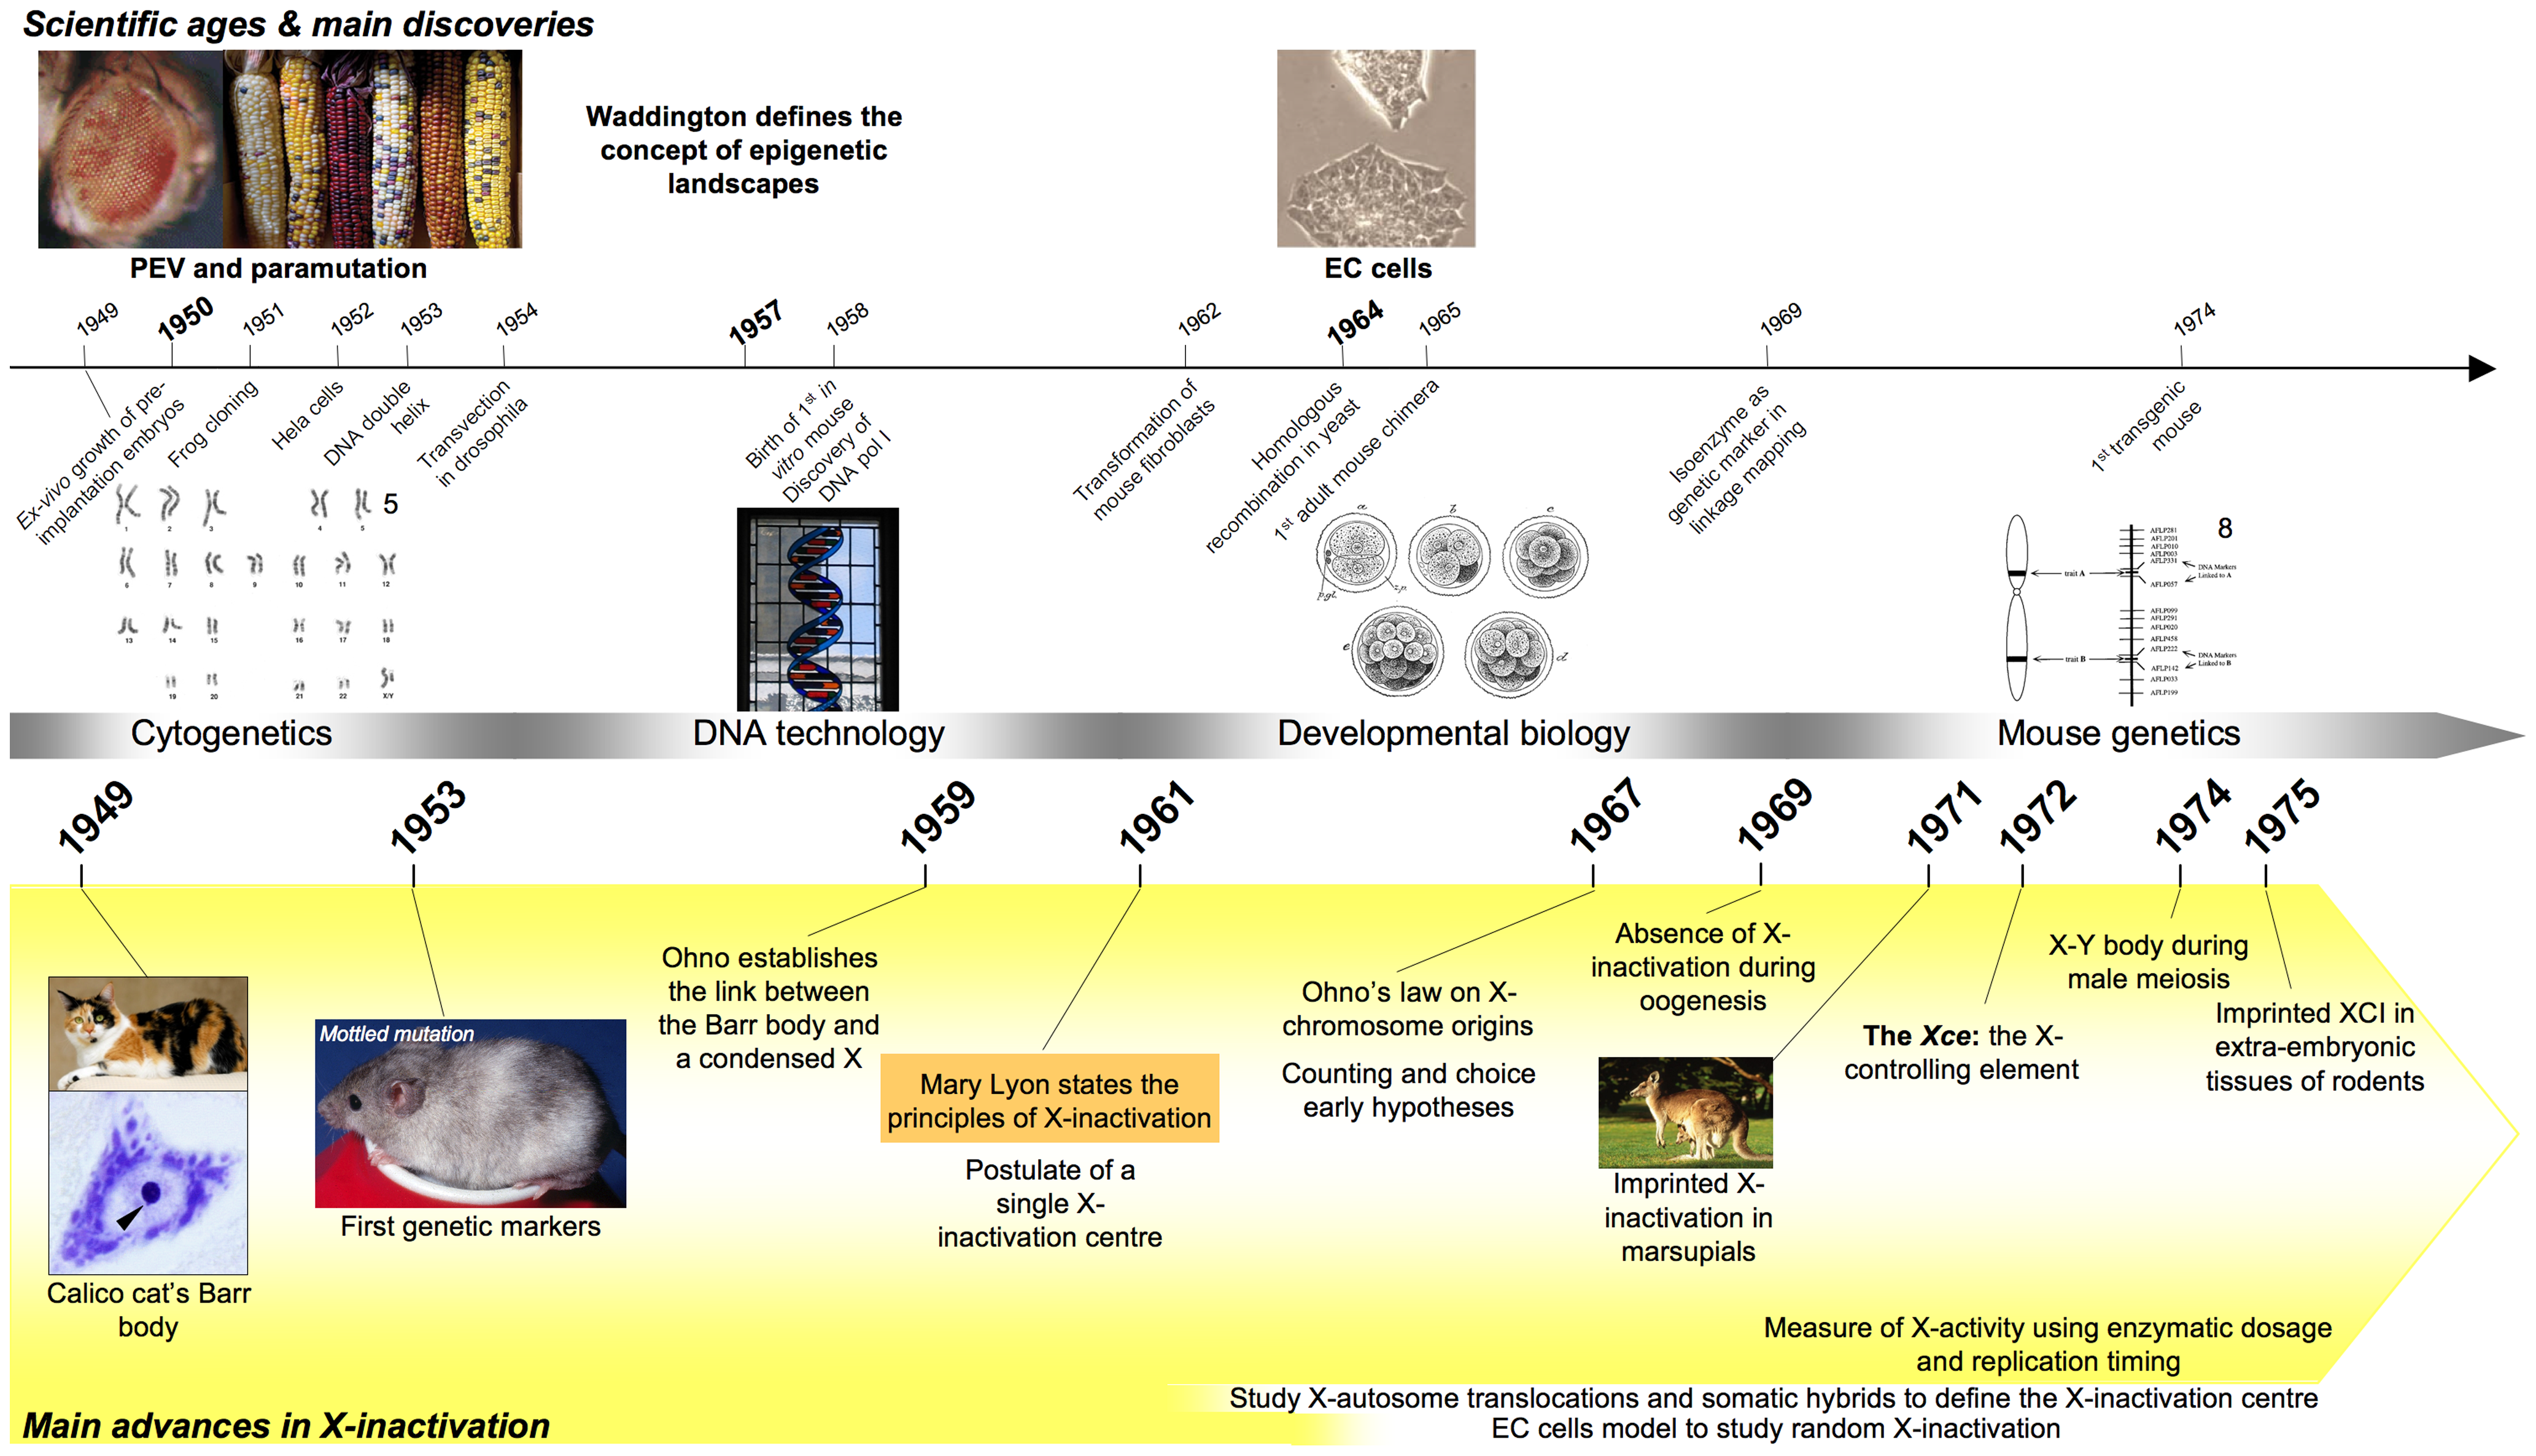 Timeline showing milestones in the history of X-inactivation (1950–1975).